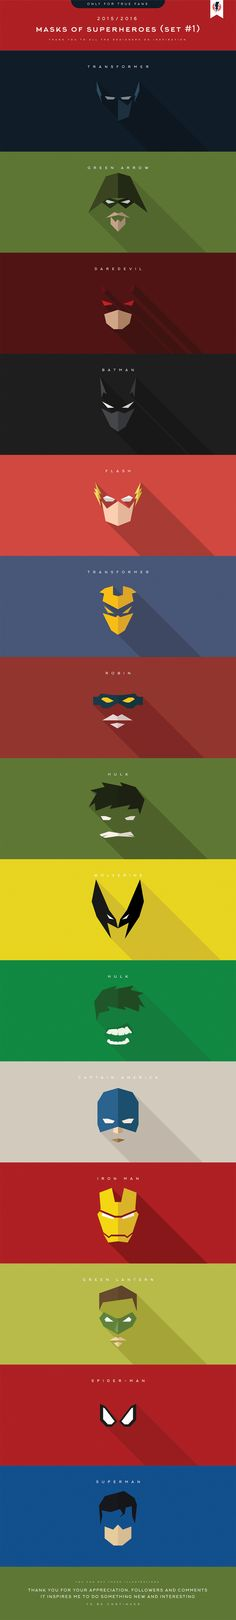 Superhero mask art 1.jpg